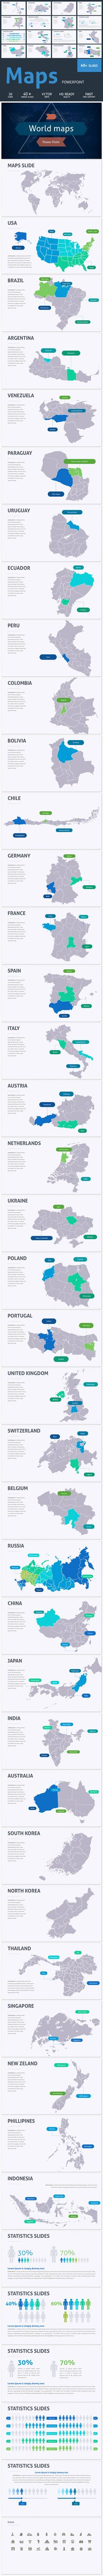 Earth maps for presentation PowerPoint Template. Download here: http://graphicriver.net/item/earth-maps-for-presentation-powerpoint/16547622?ref=ksioks